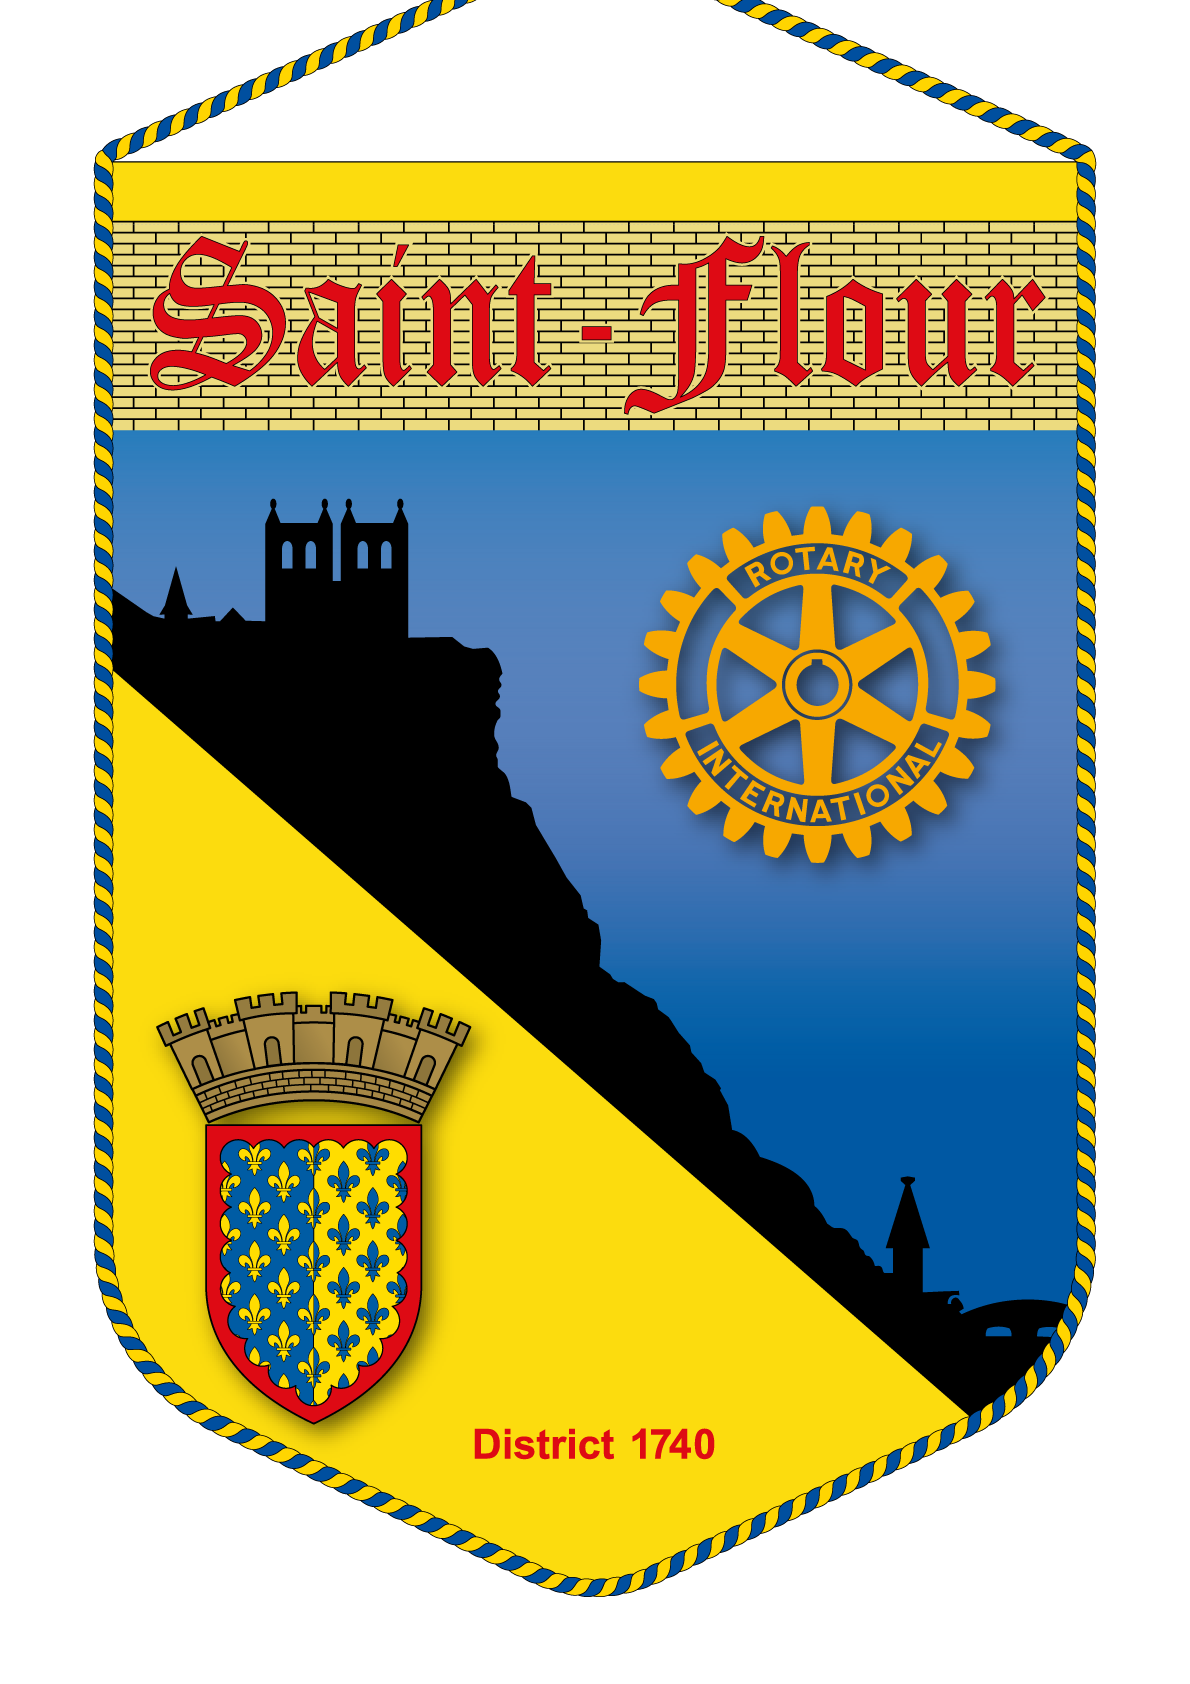 FANION ROTARY CLUB SAINT FLOUR